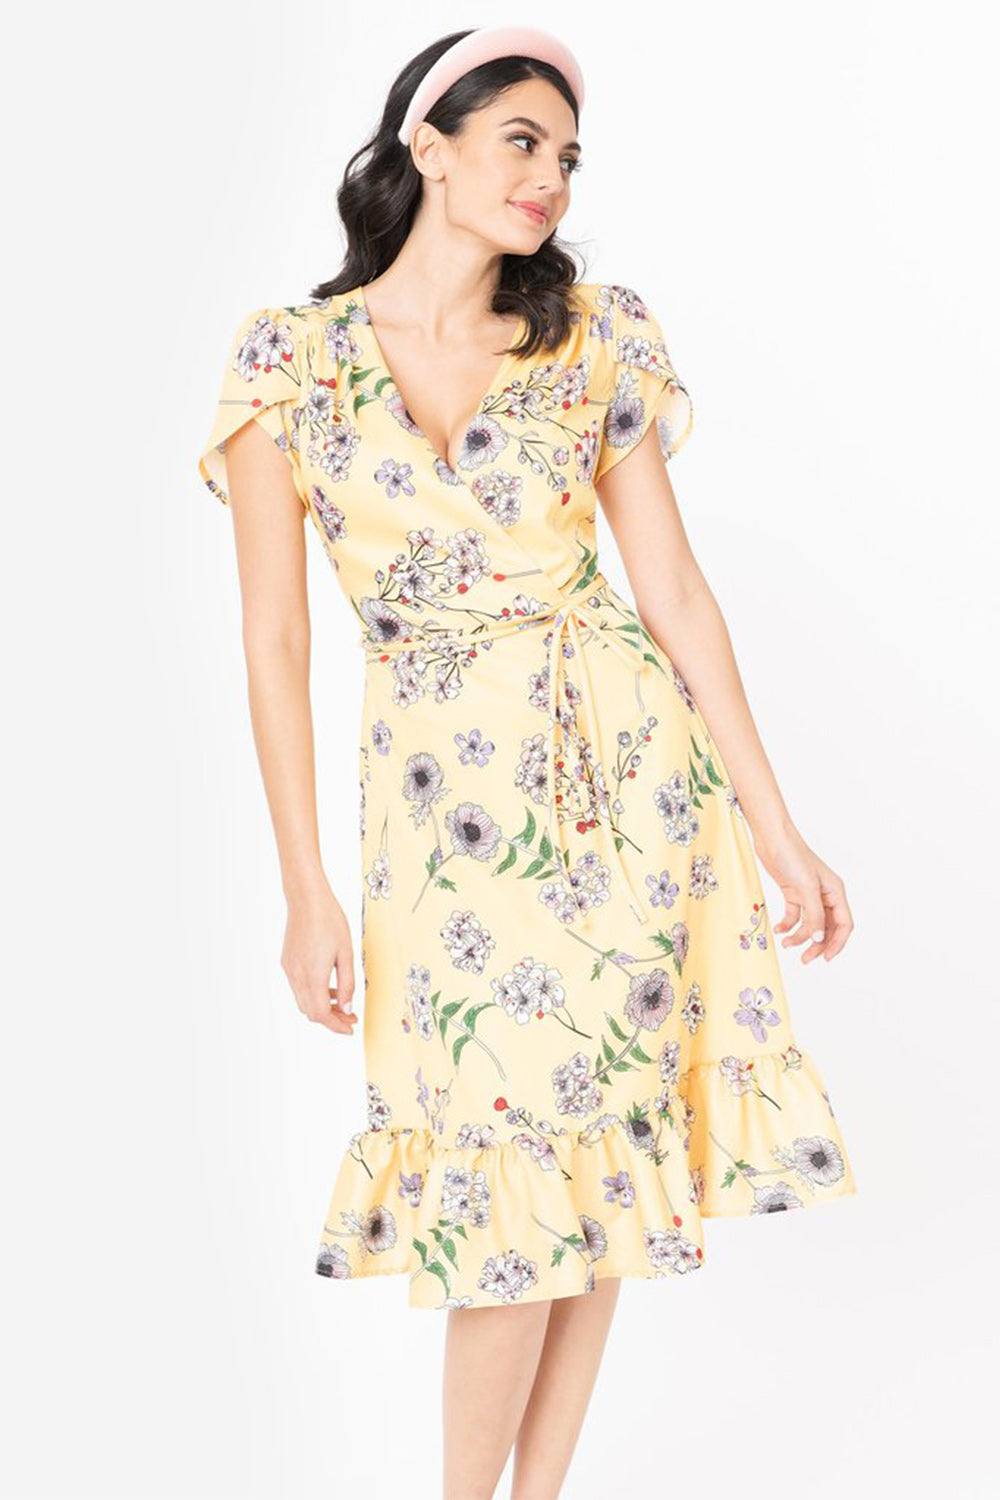 Yellow & Ivory Floral Hide & Go Chic Midi Dress by Smak Parlour